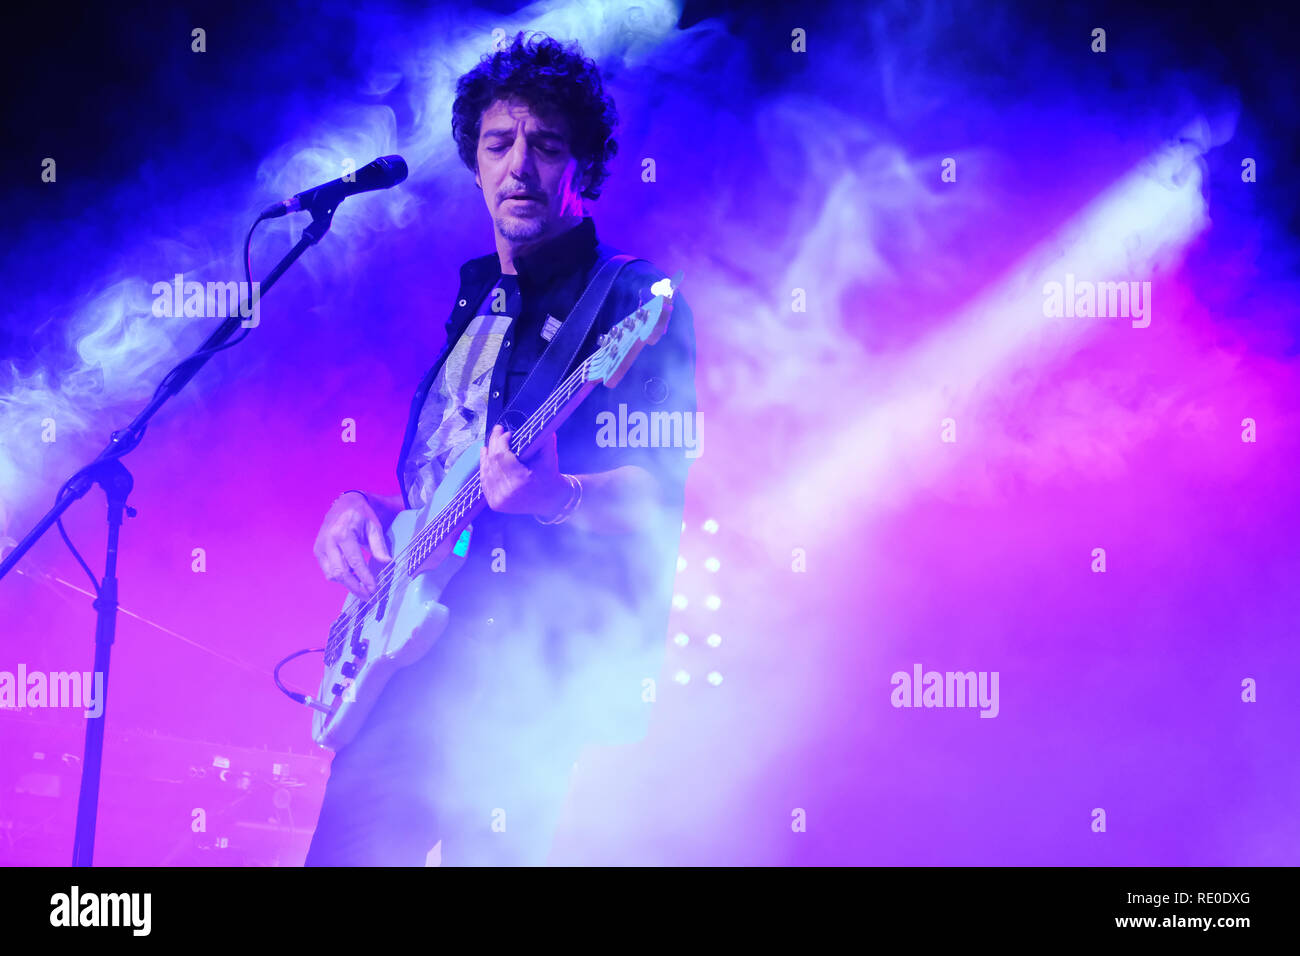 Turin, Italy. 04th Jan, 2019. Max Gazzè opens from Turin with three dates to the theater of the Concordia di Venaria his Tour to celebrate the 20 years of the historical album 'The story of Adam and Eve' from which the tour takes its name. Credit: Bruno Brizzi/Pacific Press/Alamy Live News - Stock Image